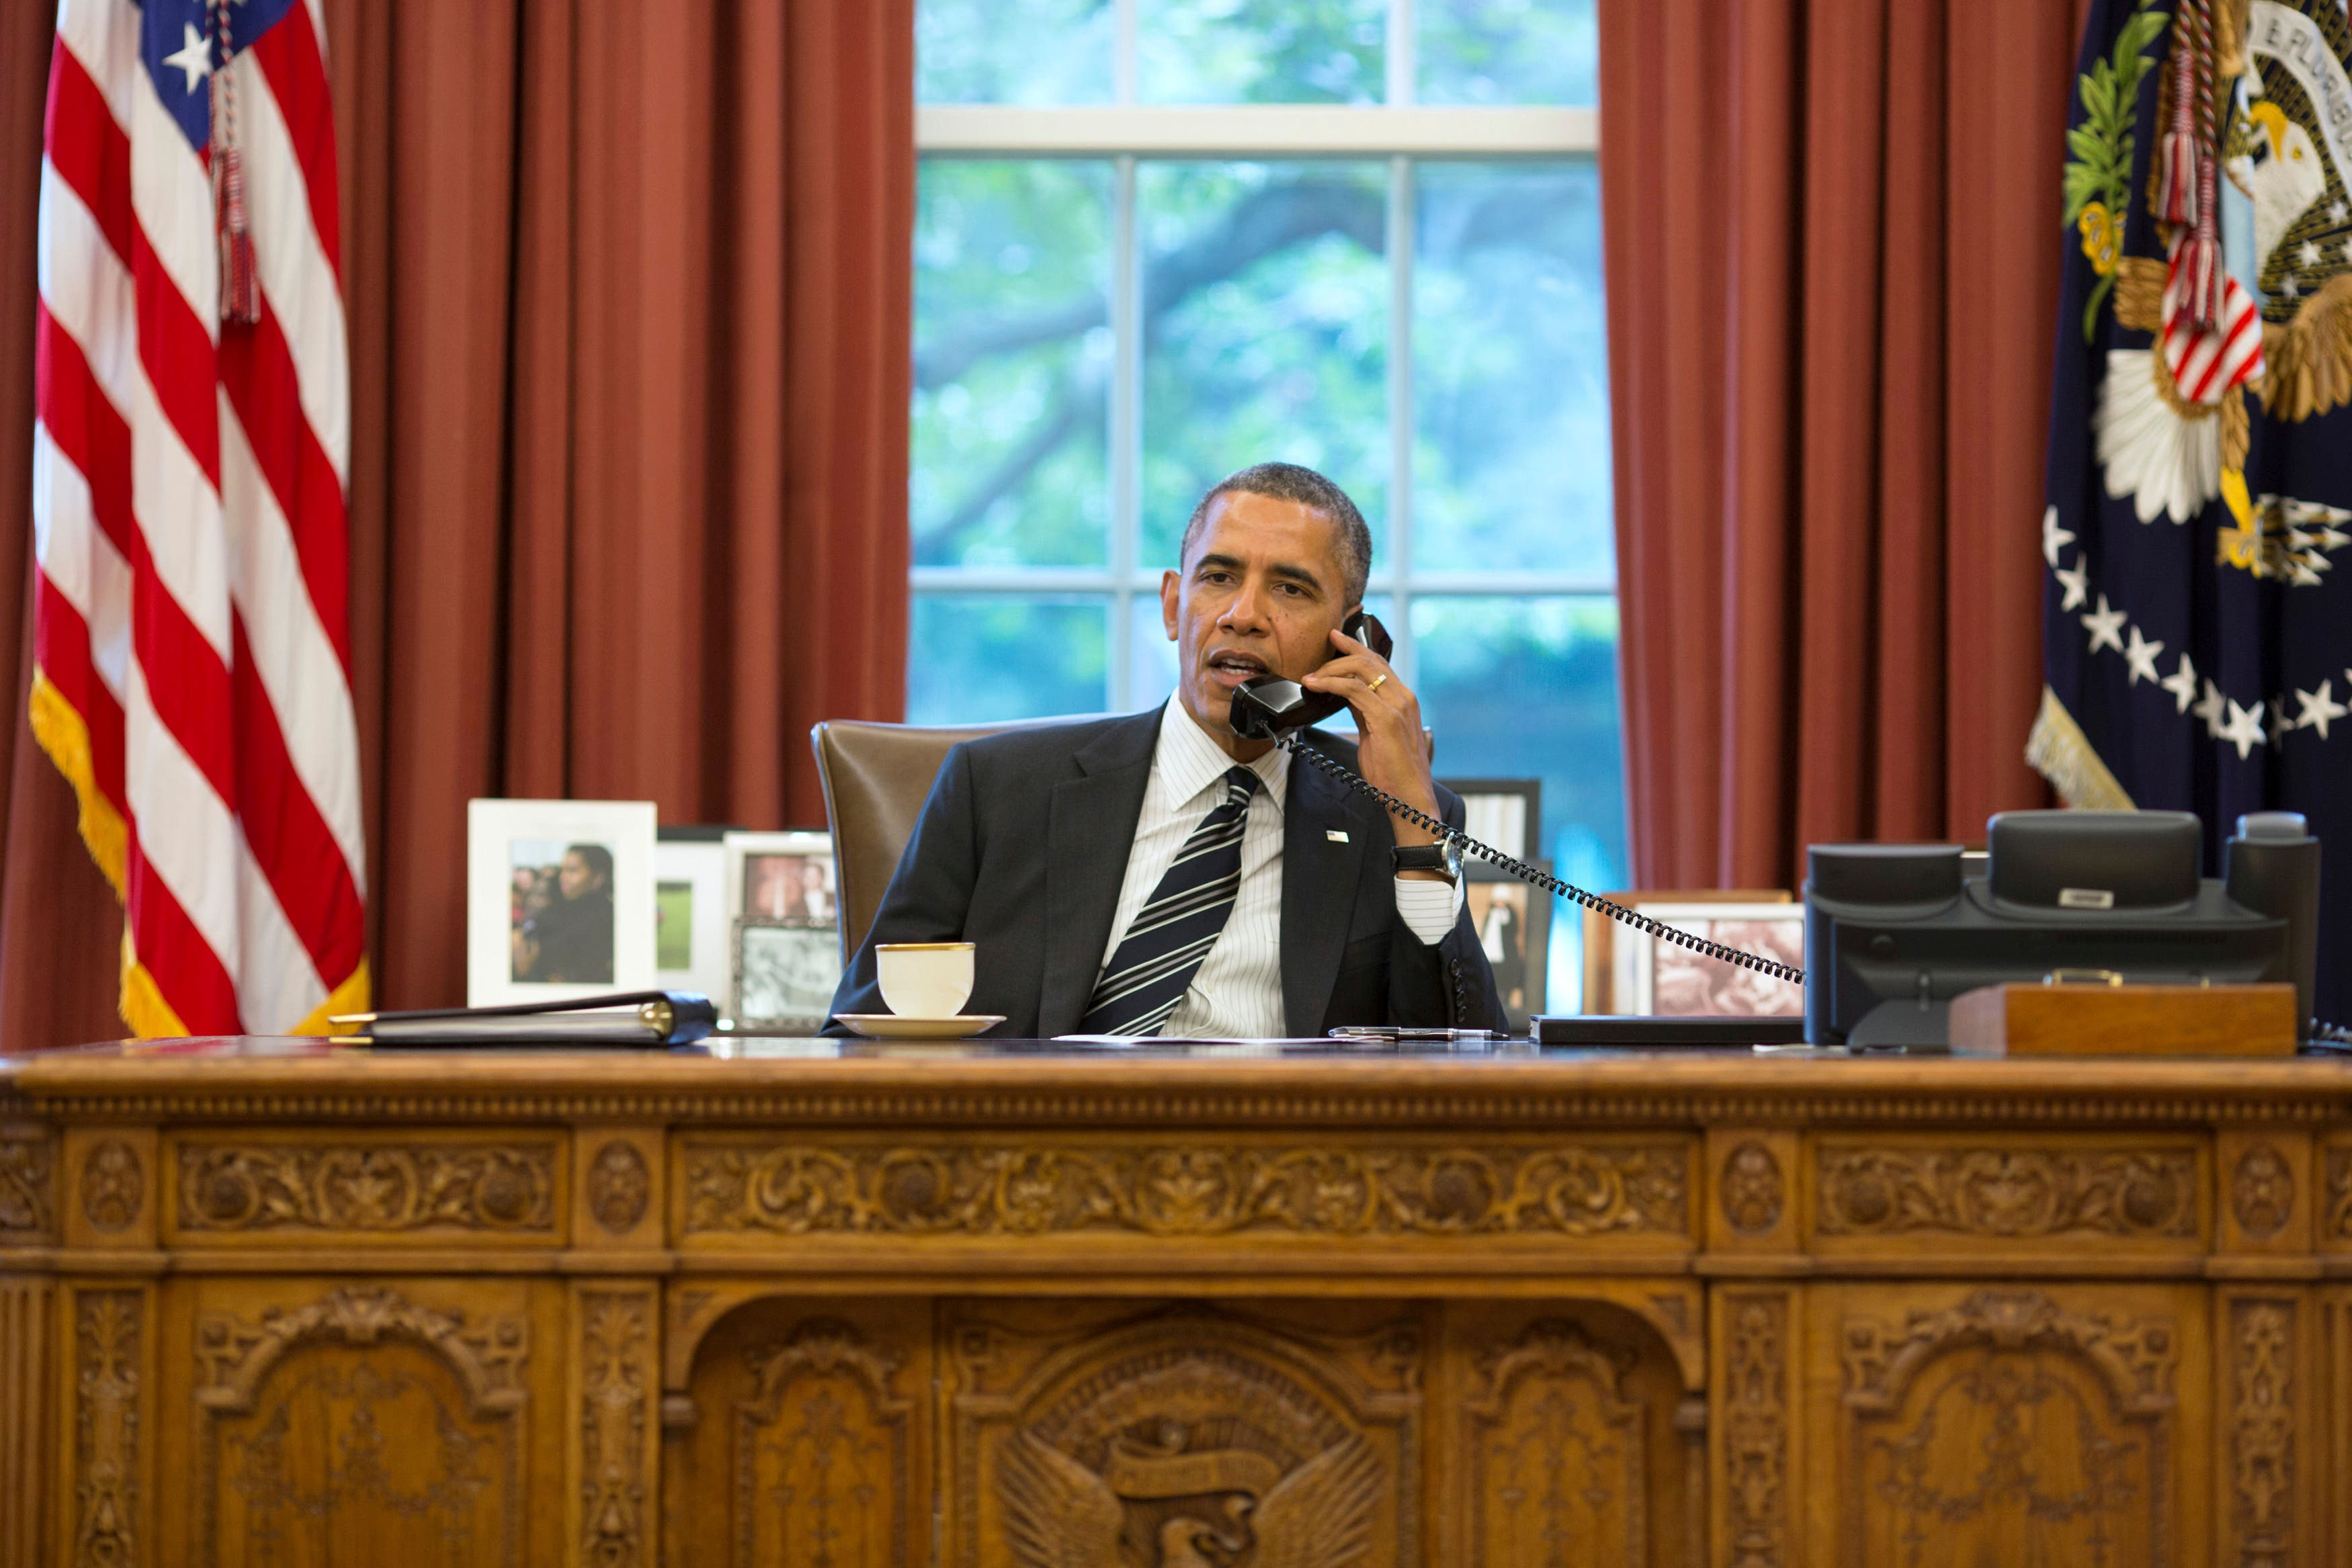 U.S. President Barack Obama talks with Iranian President Hassan Rowhani during a phone call in the Oval Office at the White House in Washington, Sep. 27, 2013. (File photo: Reuters)